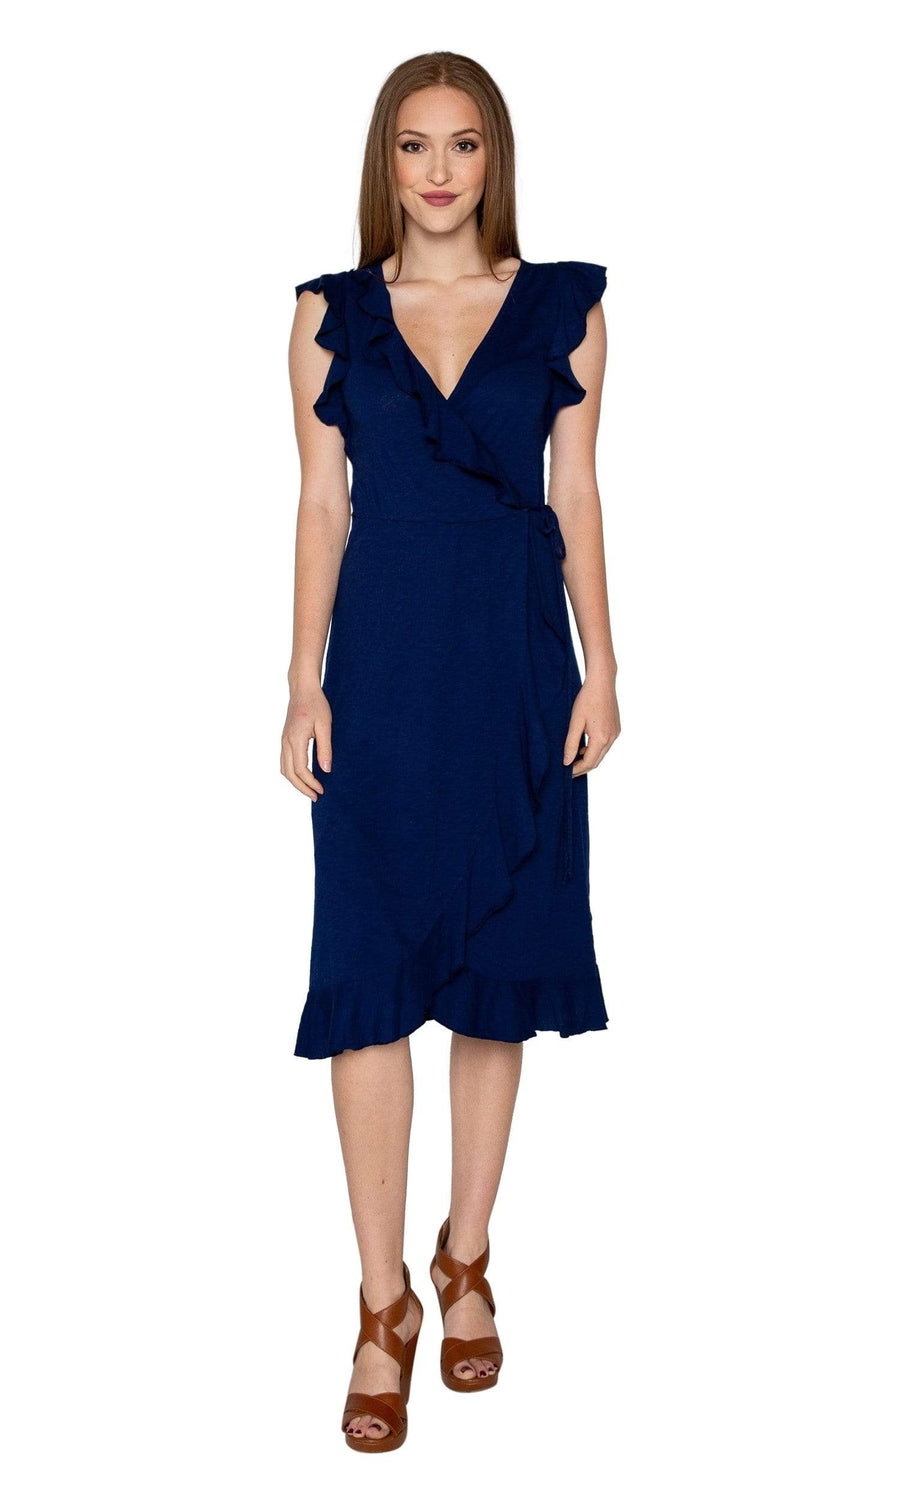 Velvet by Graham & Spencer Sedona Cotton Slub Ruffle Wrap Dress